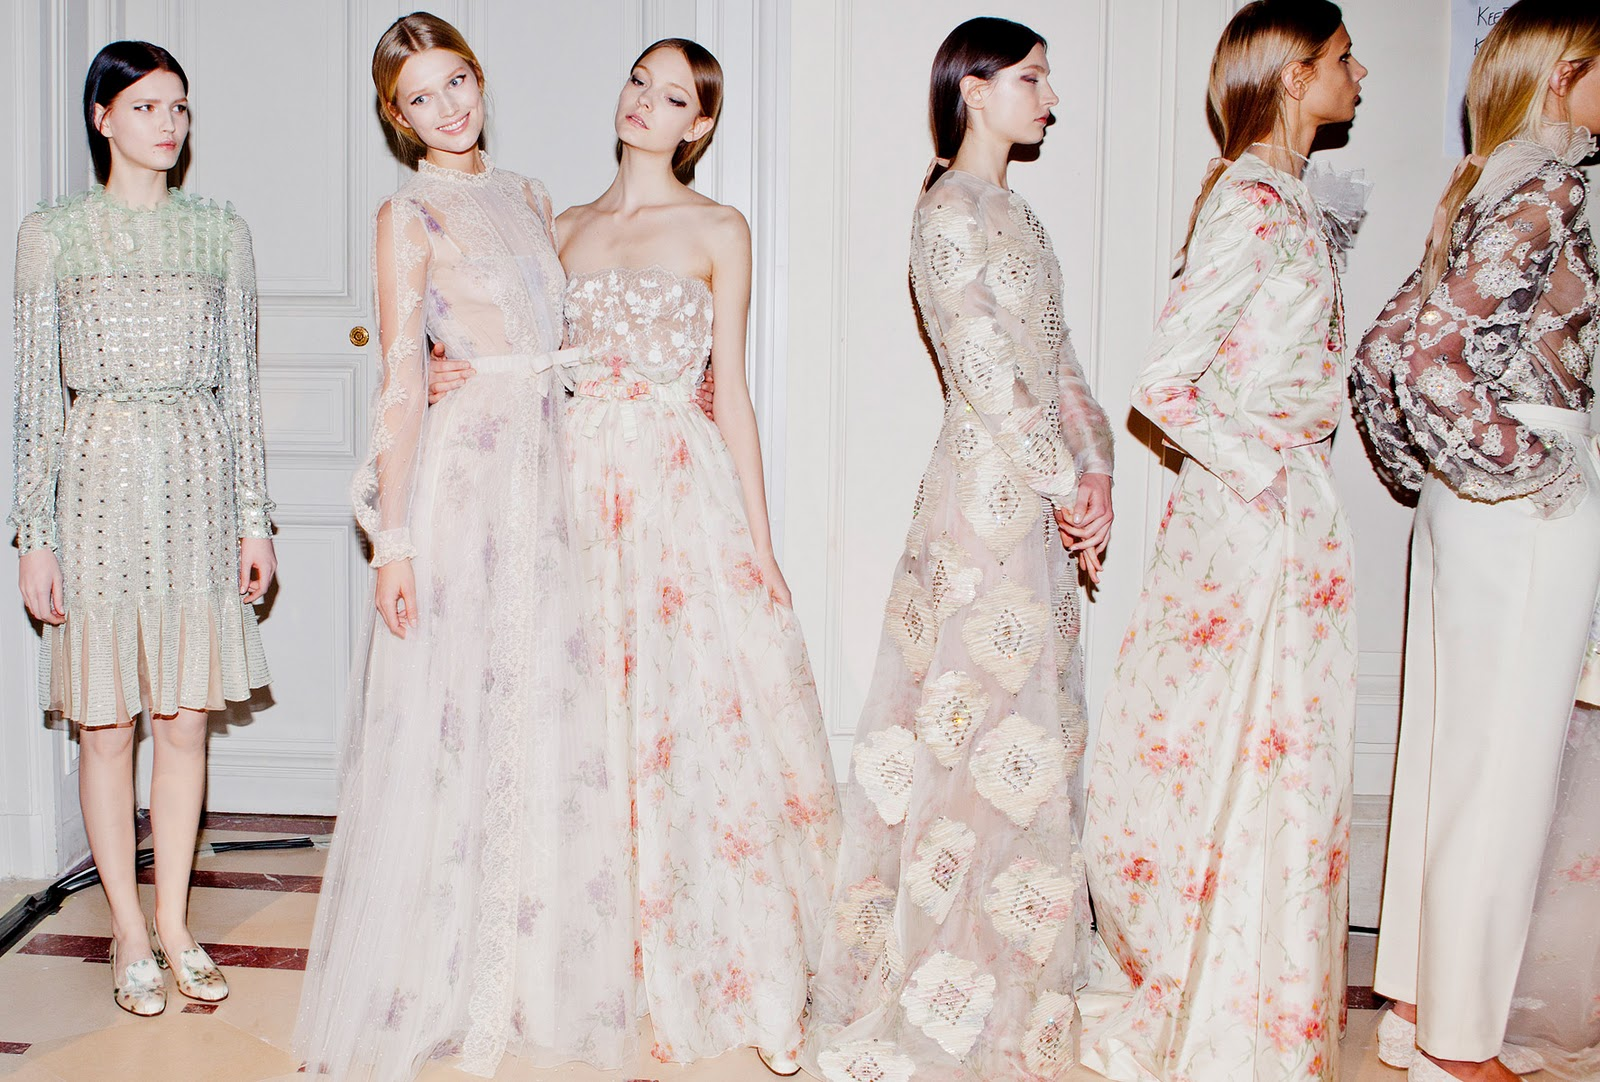 10 Eco-Friendly Luxury Fashion Brands - Valentino